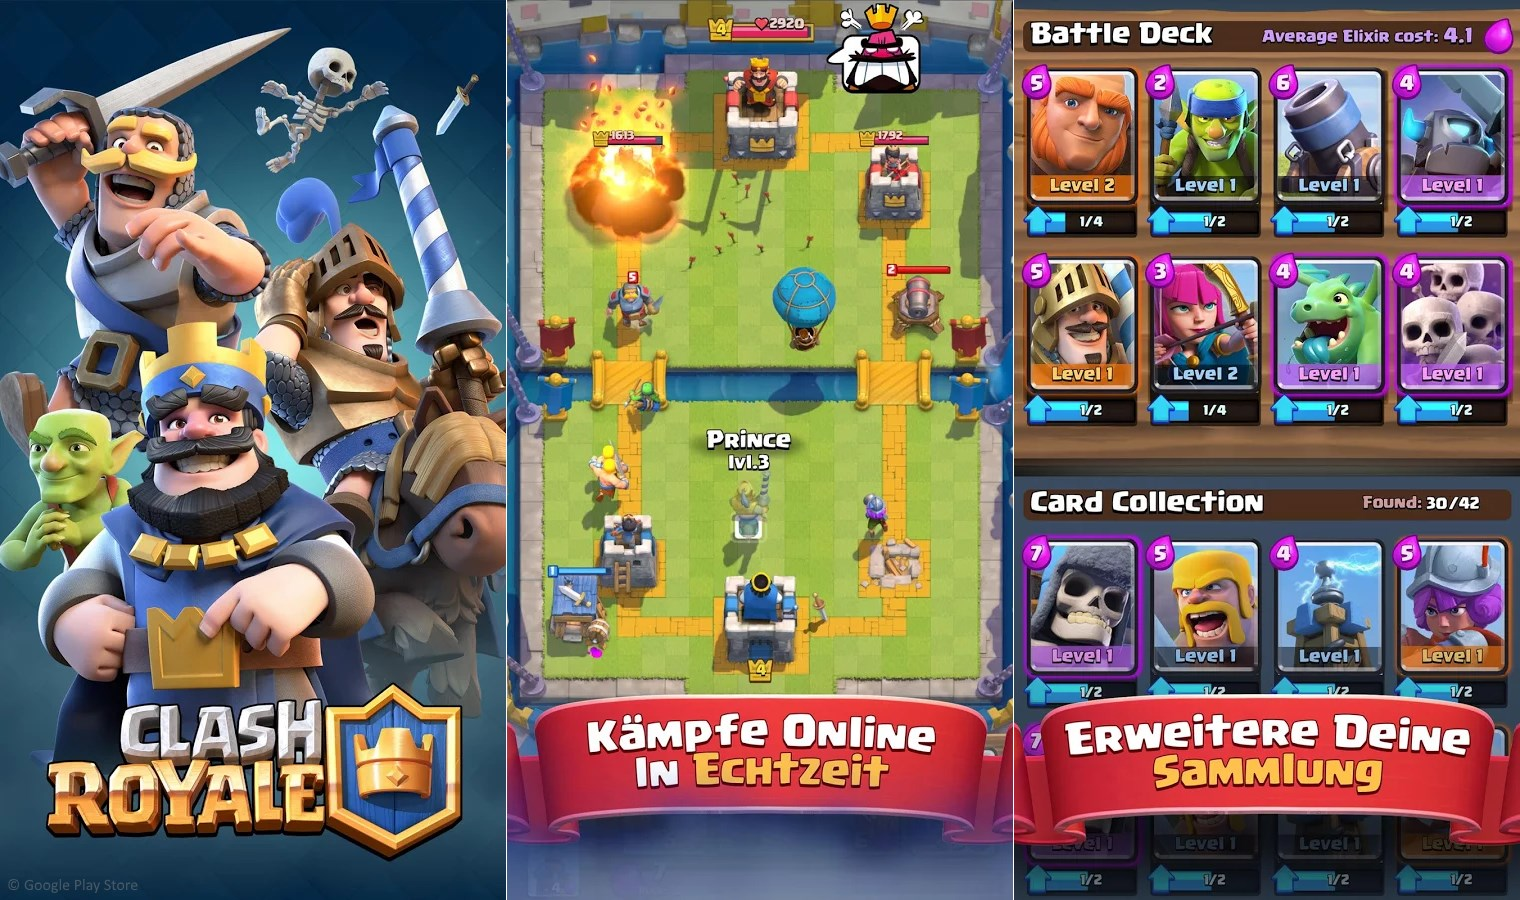 clash-royale-supercell-app-iphone-ios-android-tablet-smartphone-mobile-fb